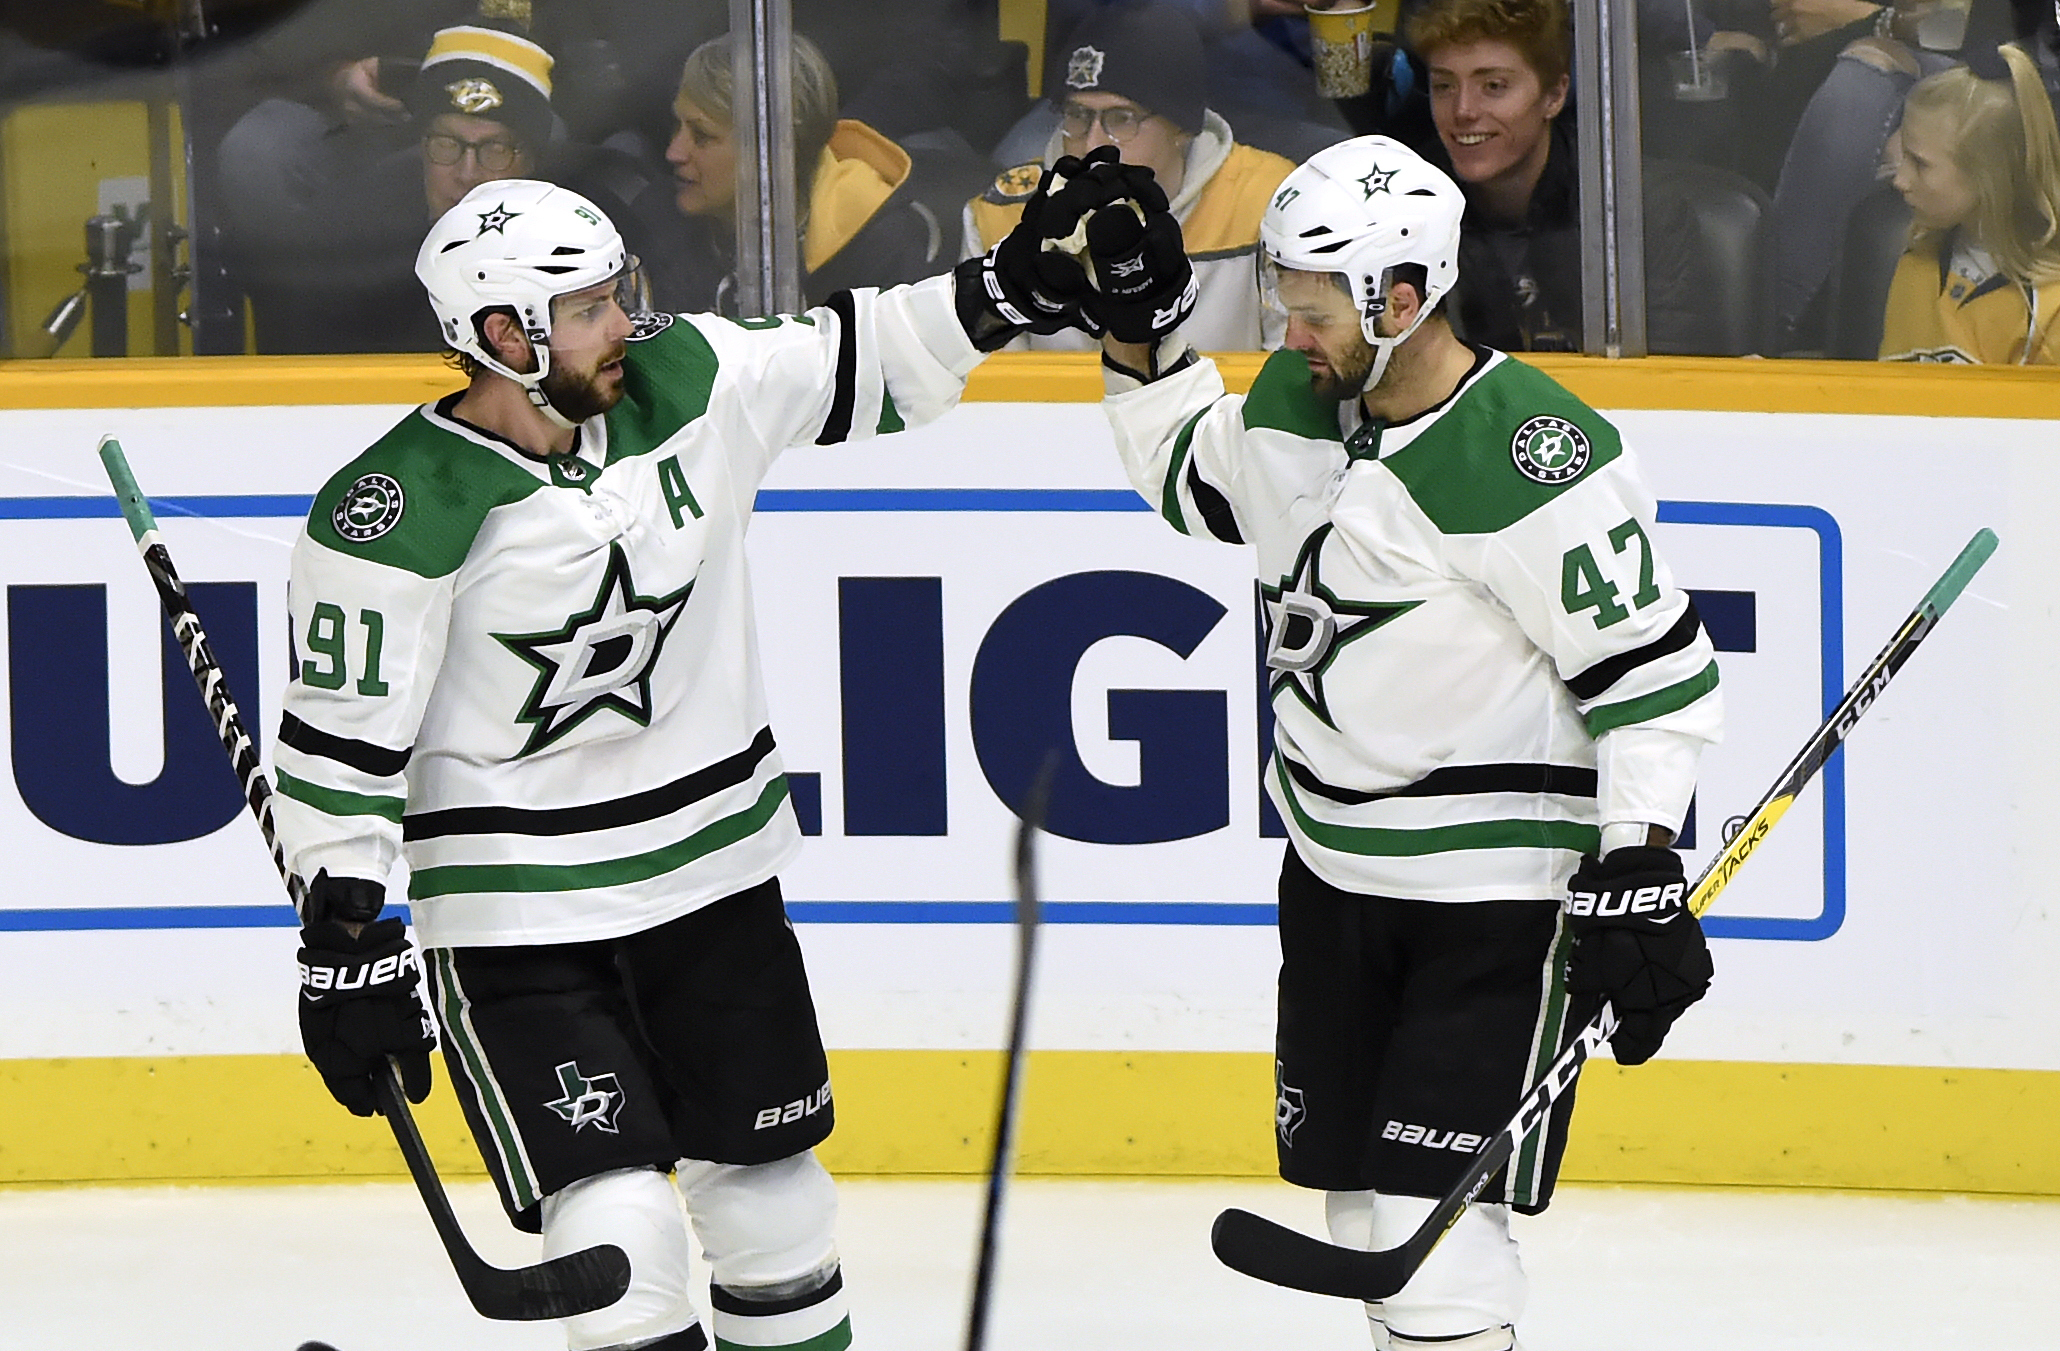 Comeau and Janmark score late, lead Stars over Predators 3-1